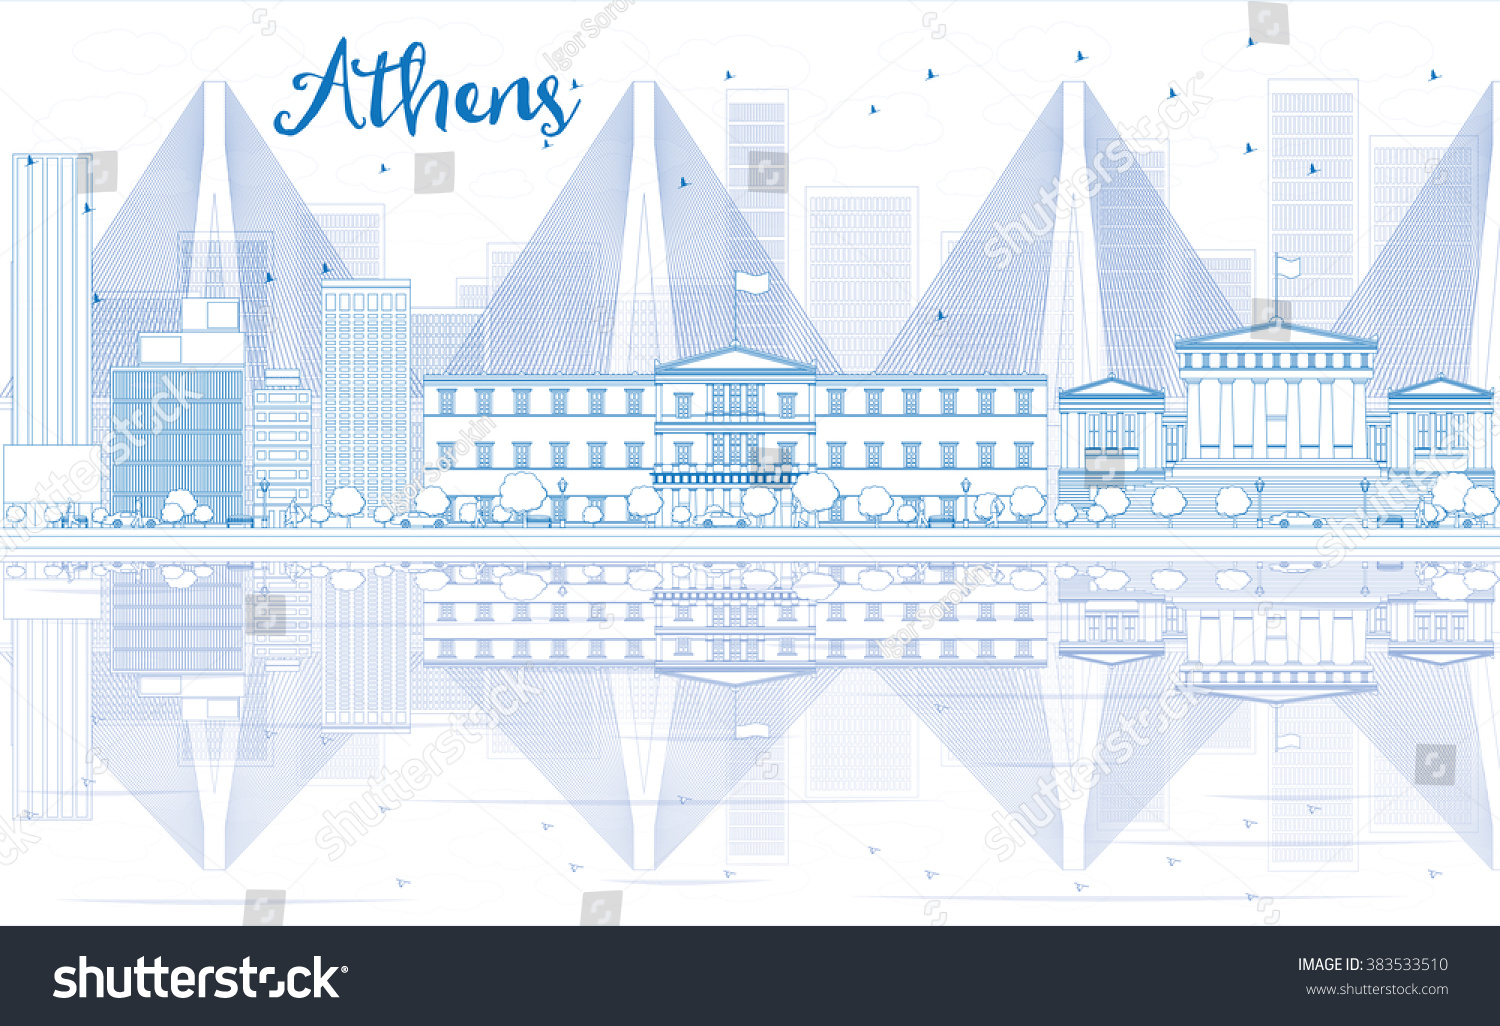 Outline athens skyline with blue buildings and copy space stock vector - Outline Athens Skyline With Blue Buildings And Reflections Vector Illustration Business Travel And Tourism